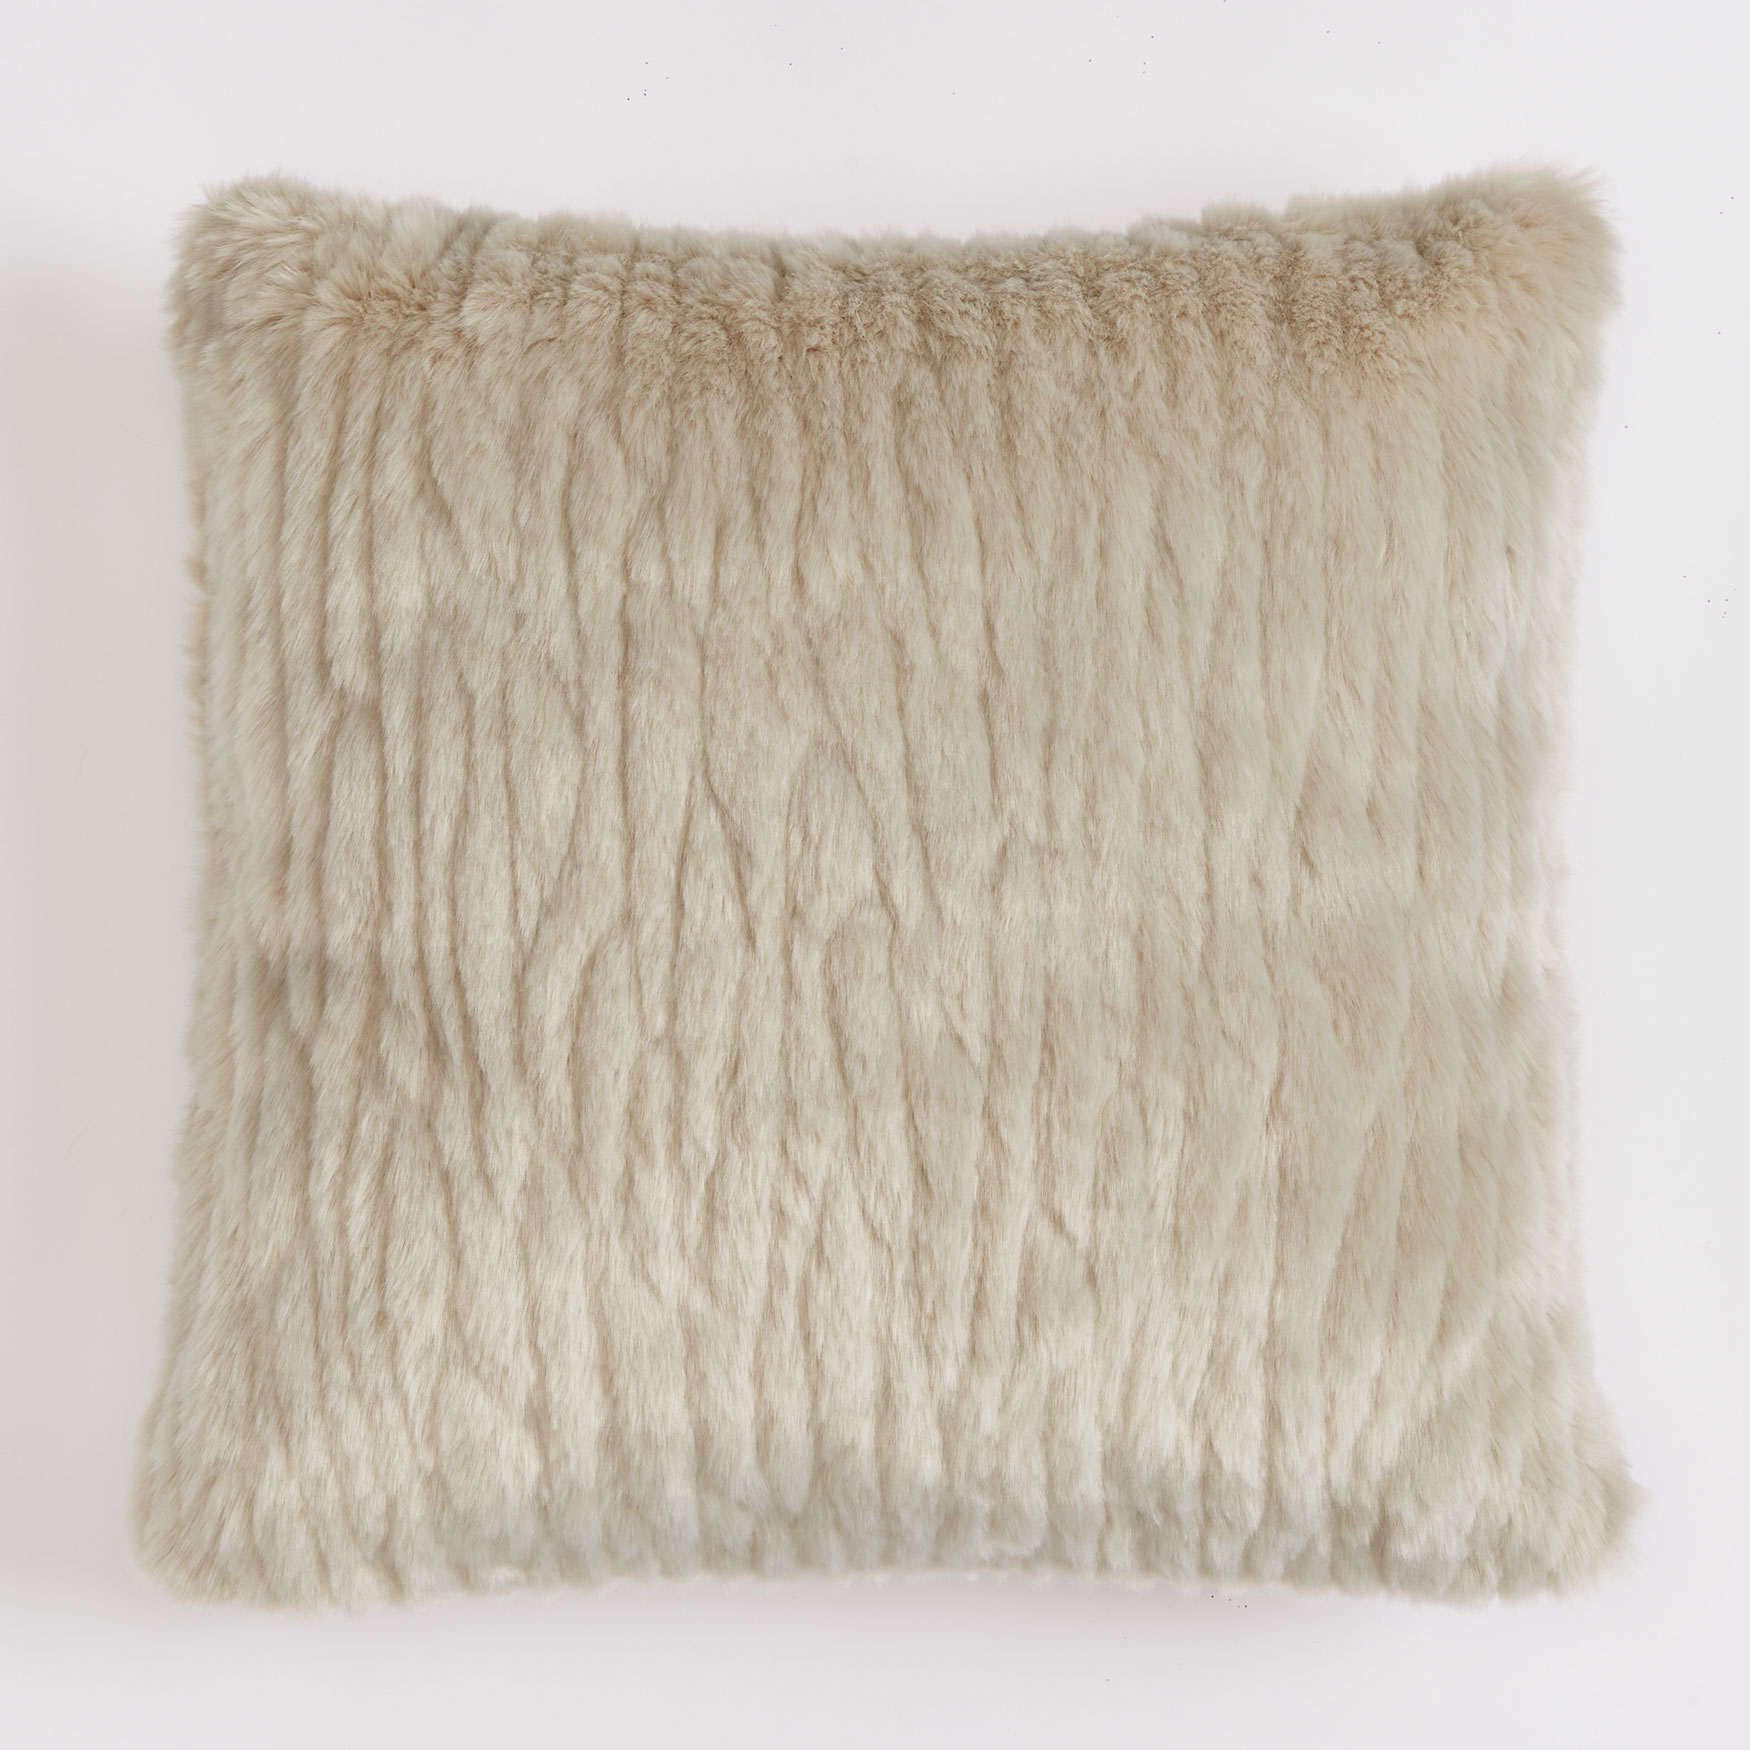 "Textured Faux Fur 18"" Sq. Pillow , GRAY"